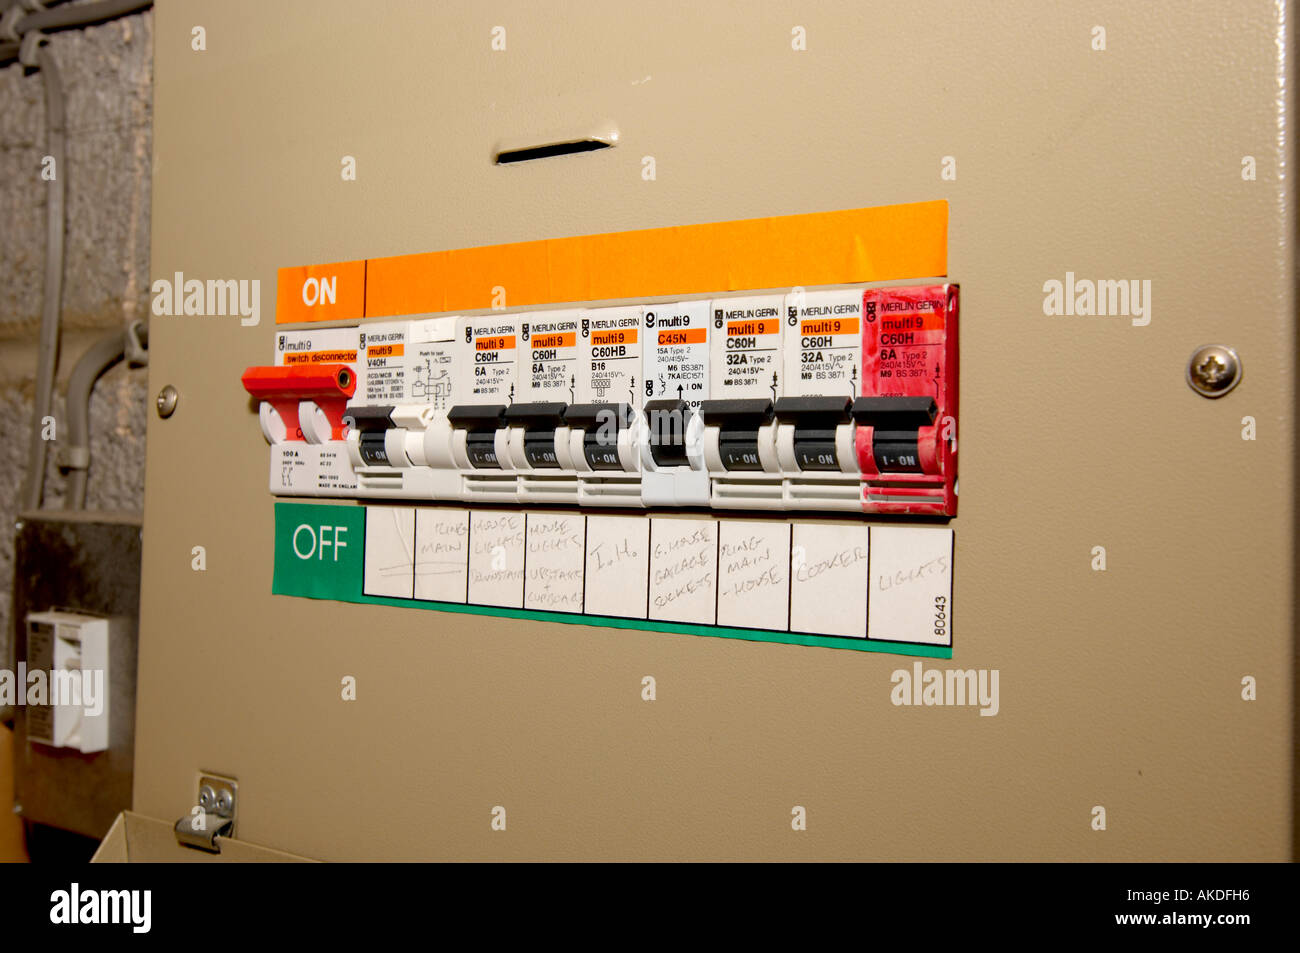 Domestic Fuse Box Stock Photos Images Alamy Main Electrical Circuit Breaker Image